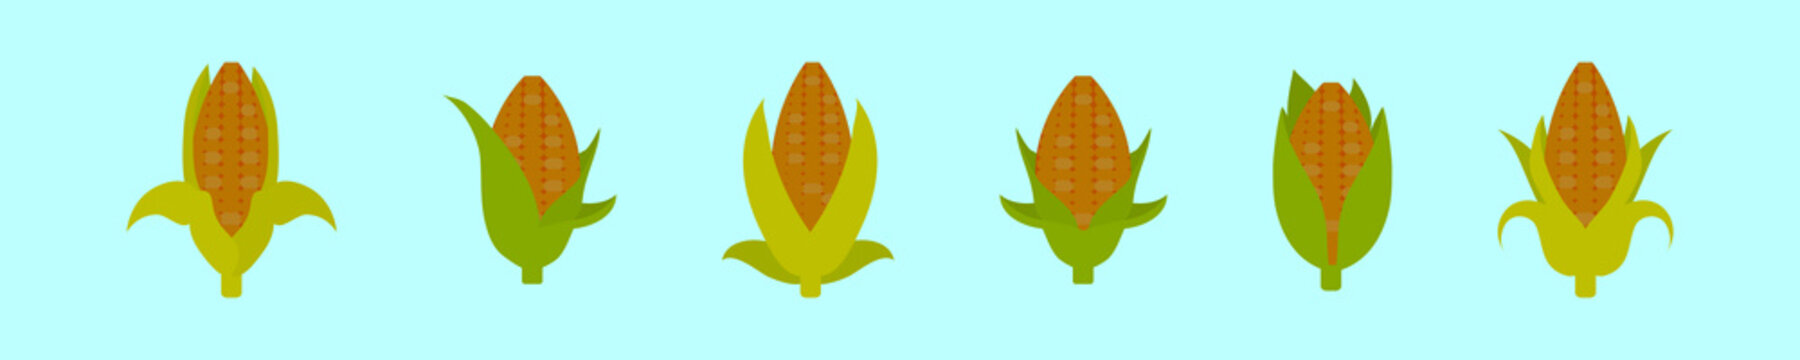 ear of corn cartoon icon design template with various models. vector illustration isolated on blue background